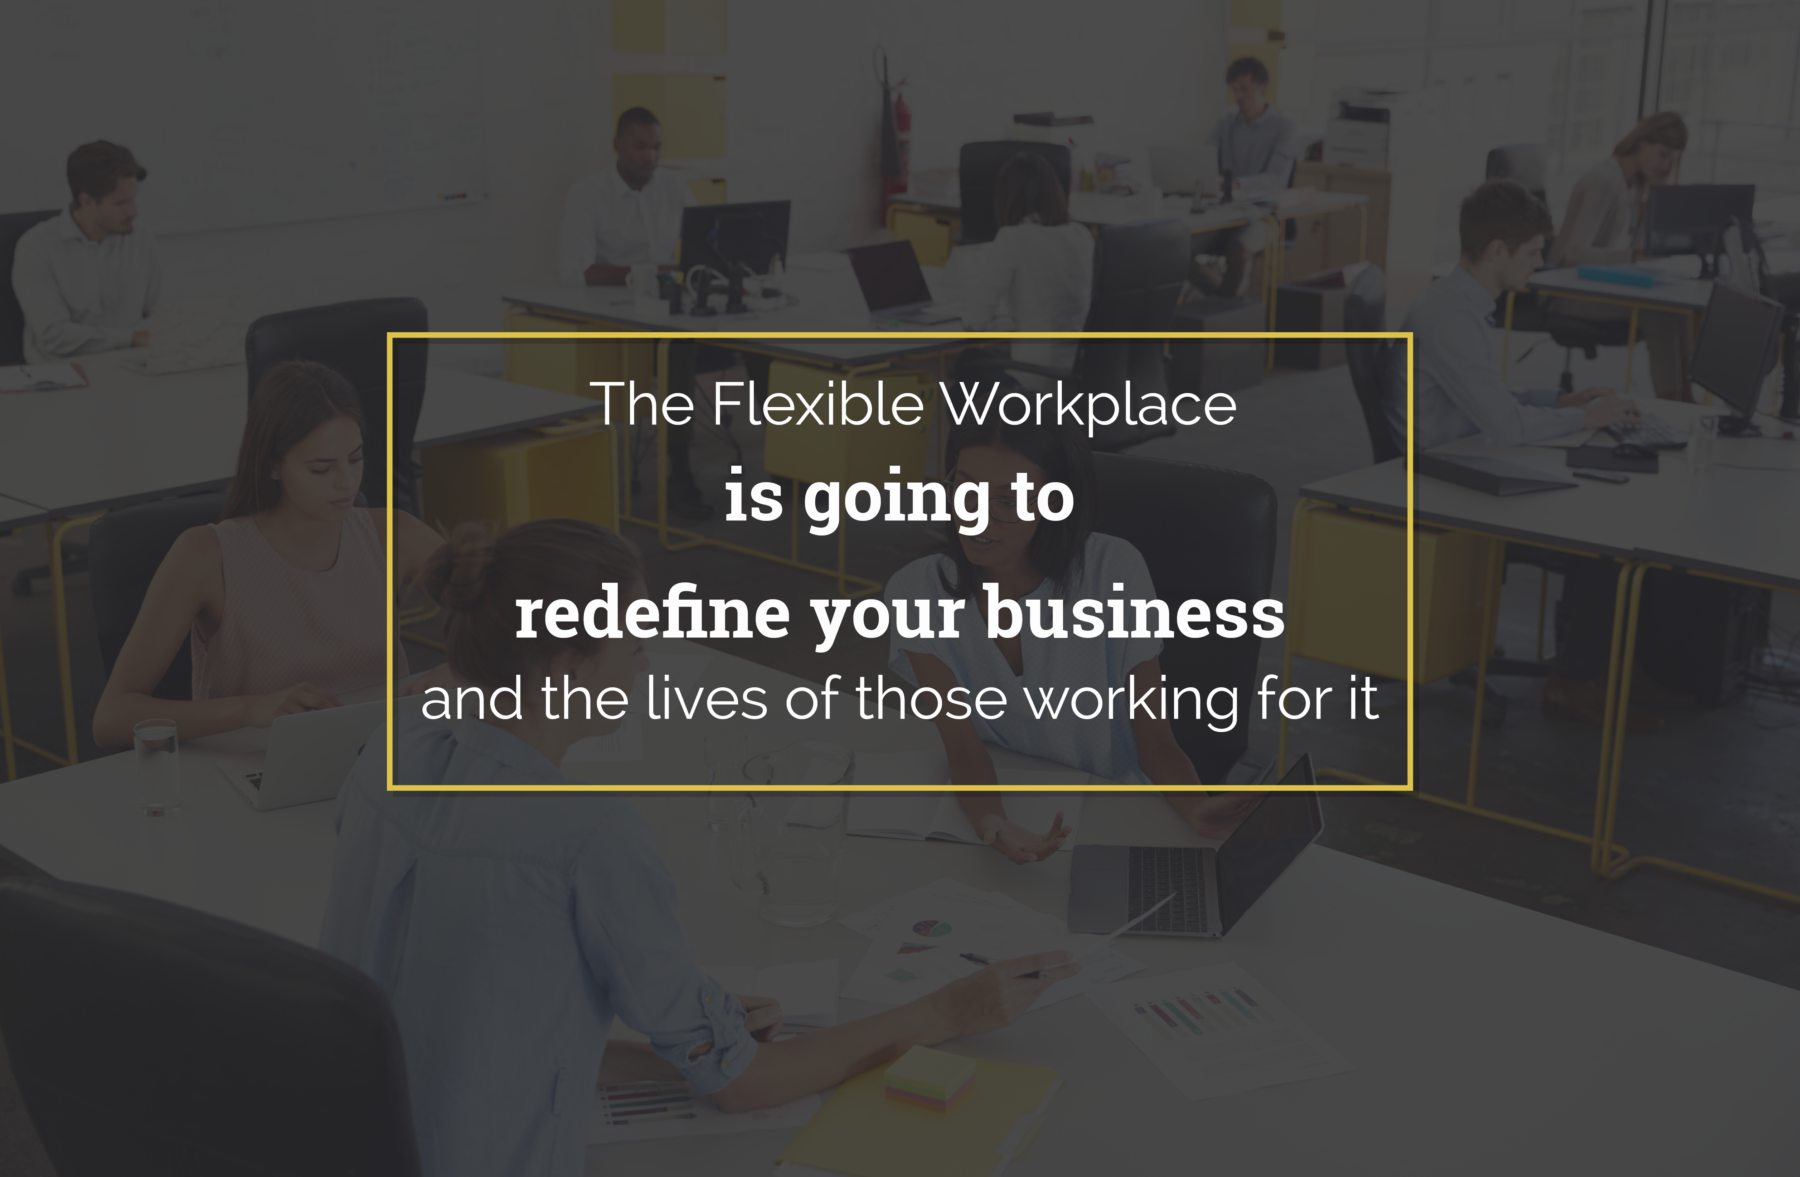 Flexible Workplace is going to Redefine Your Business